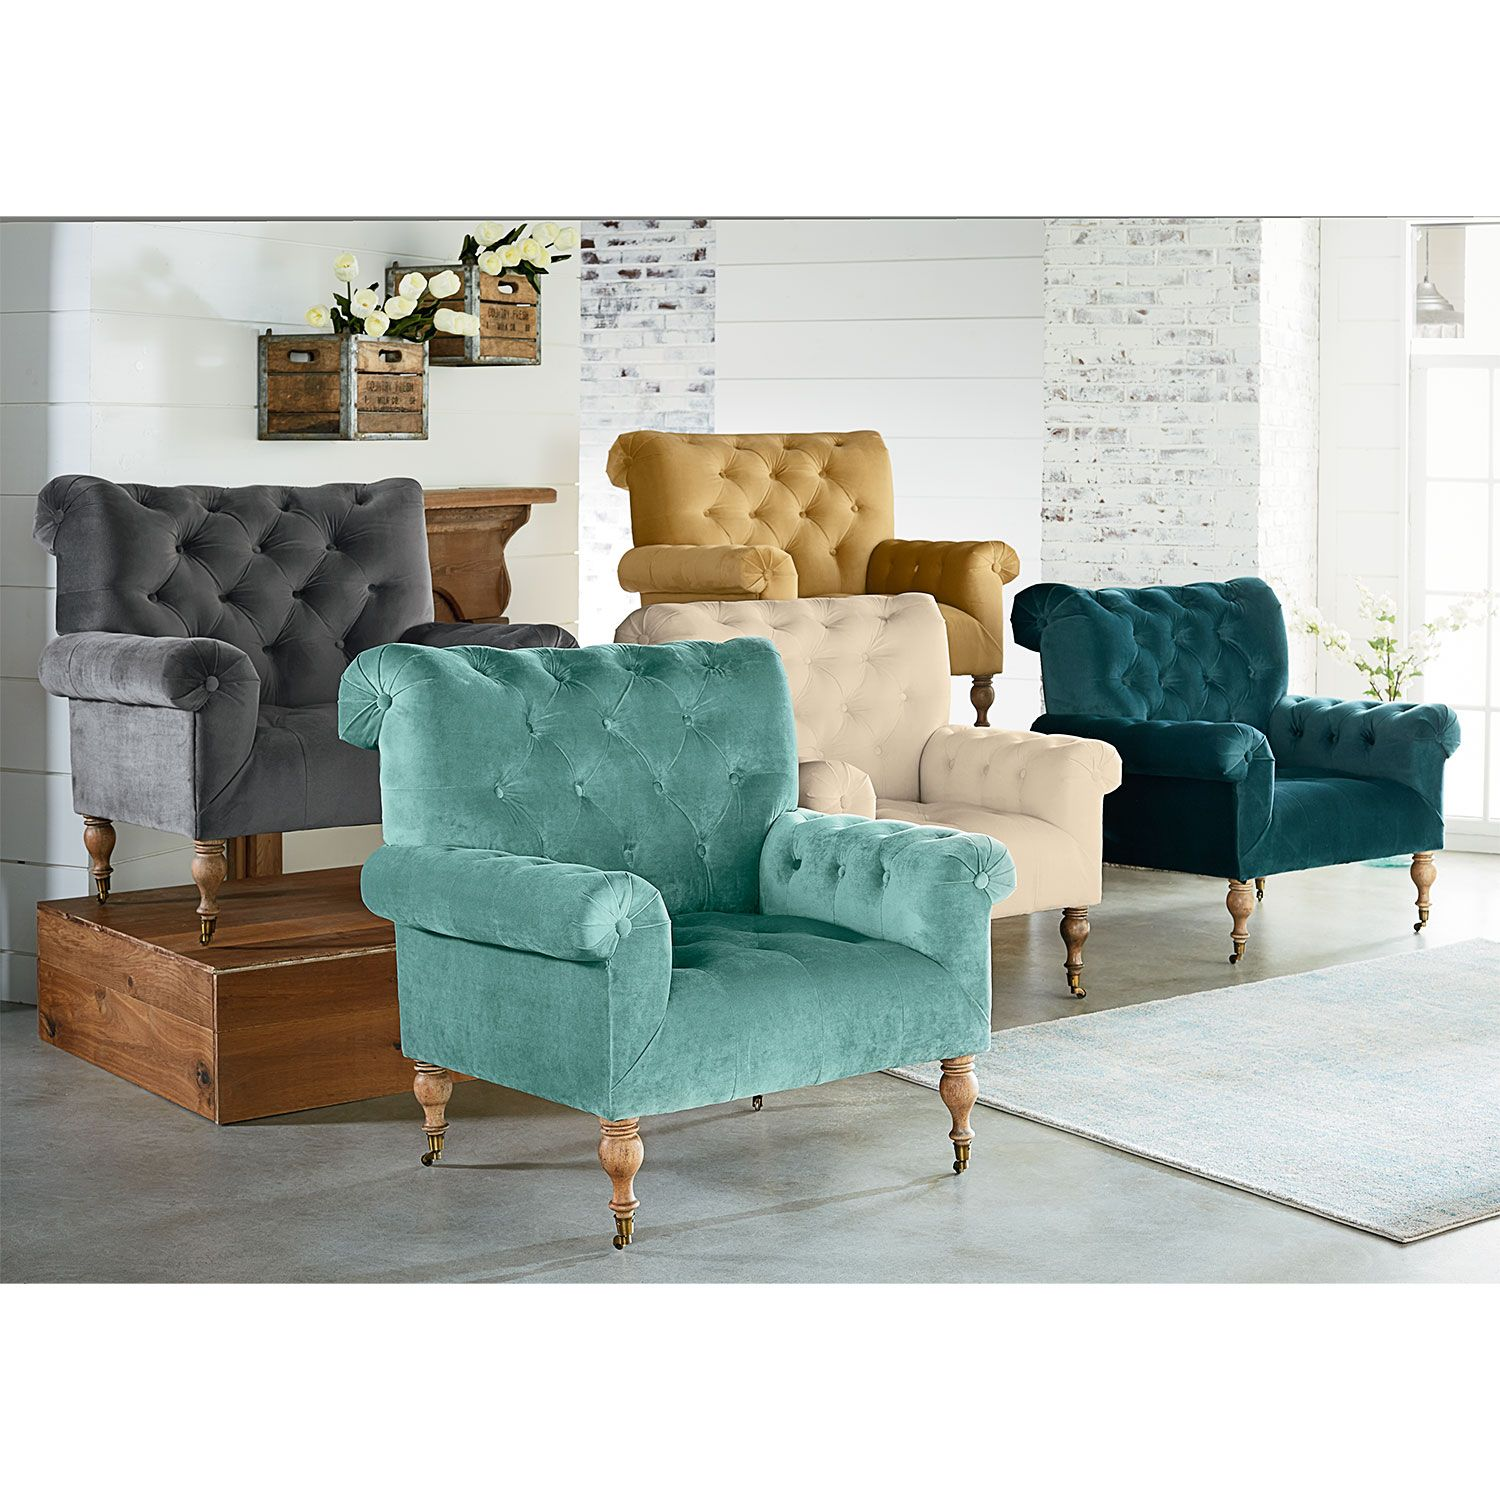 fortable and colorful the upholstered Carpe Diem Accent Chair is